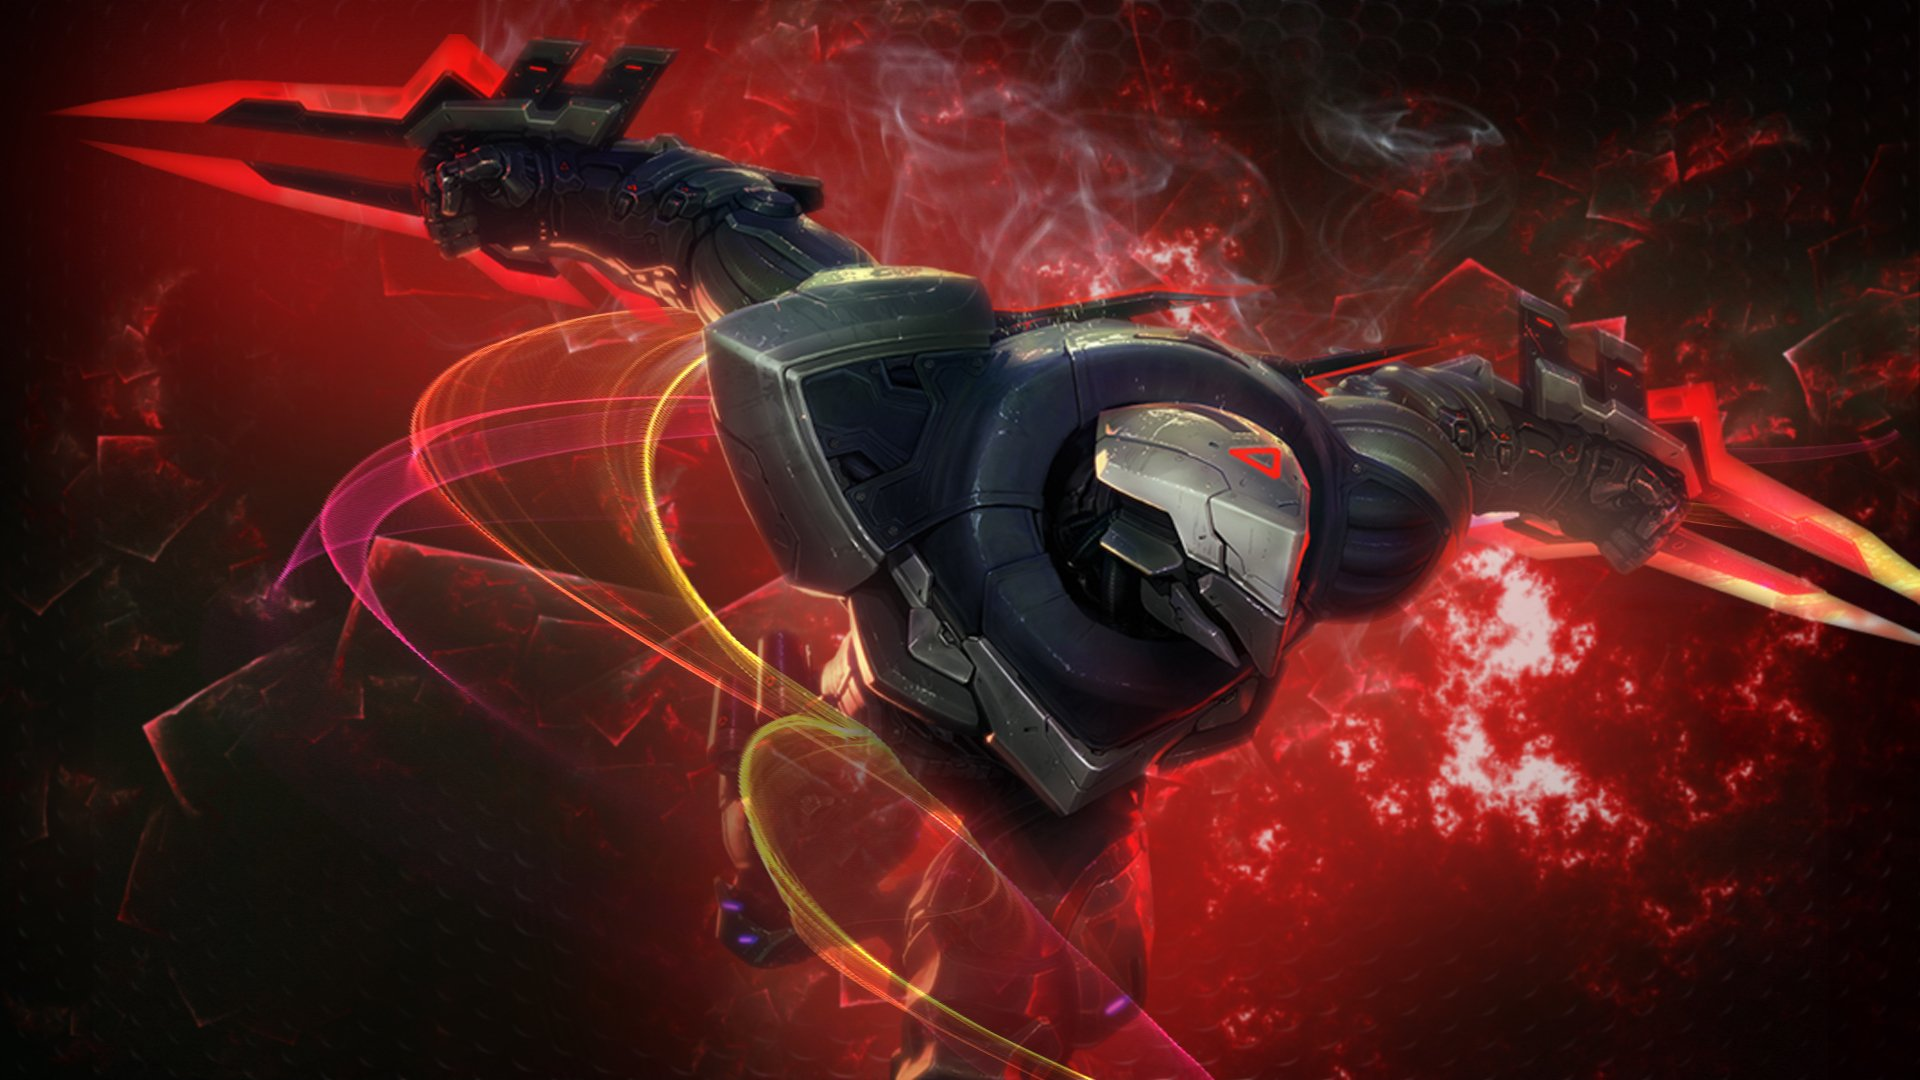 Zed Galaxy Slayer Wallpaper Hd 4k: League Of Legends HD Wallpaper